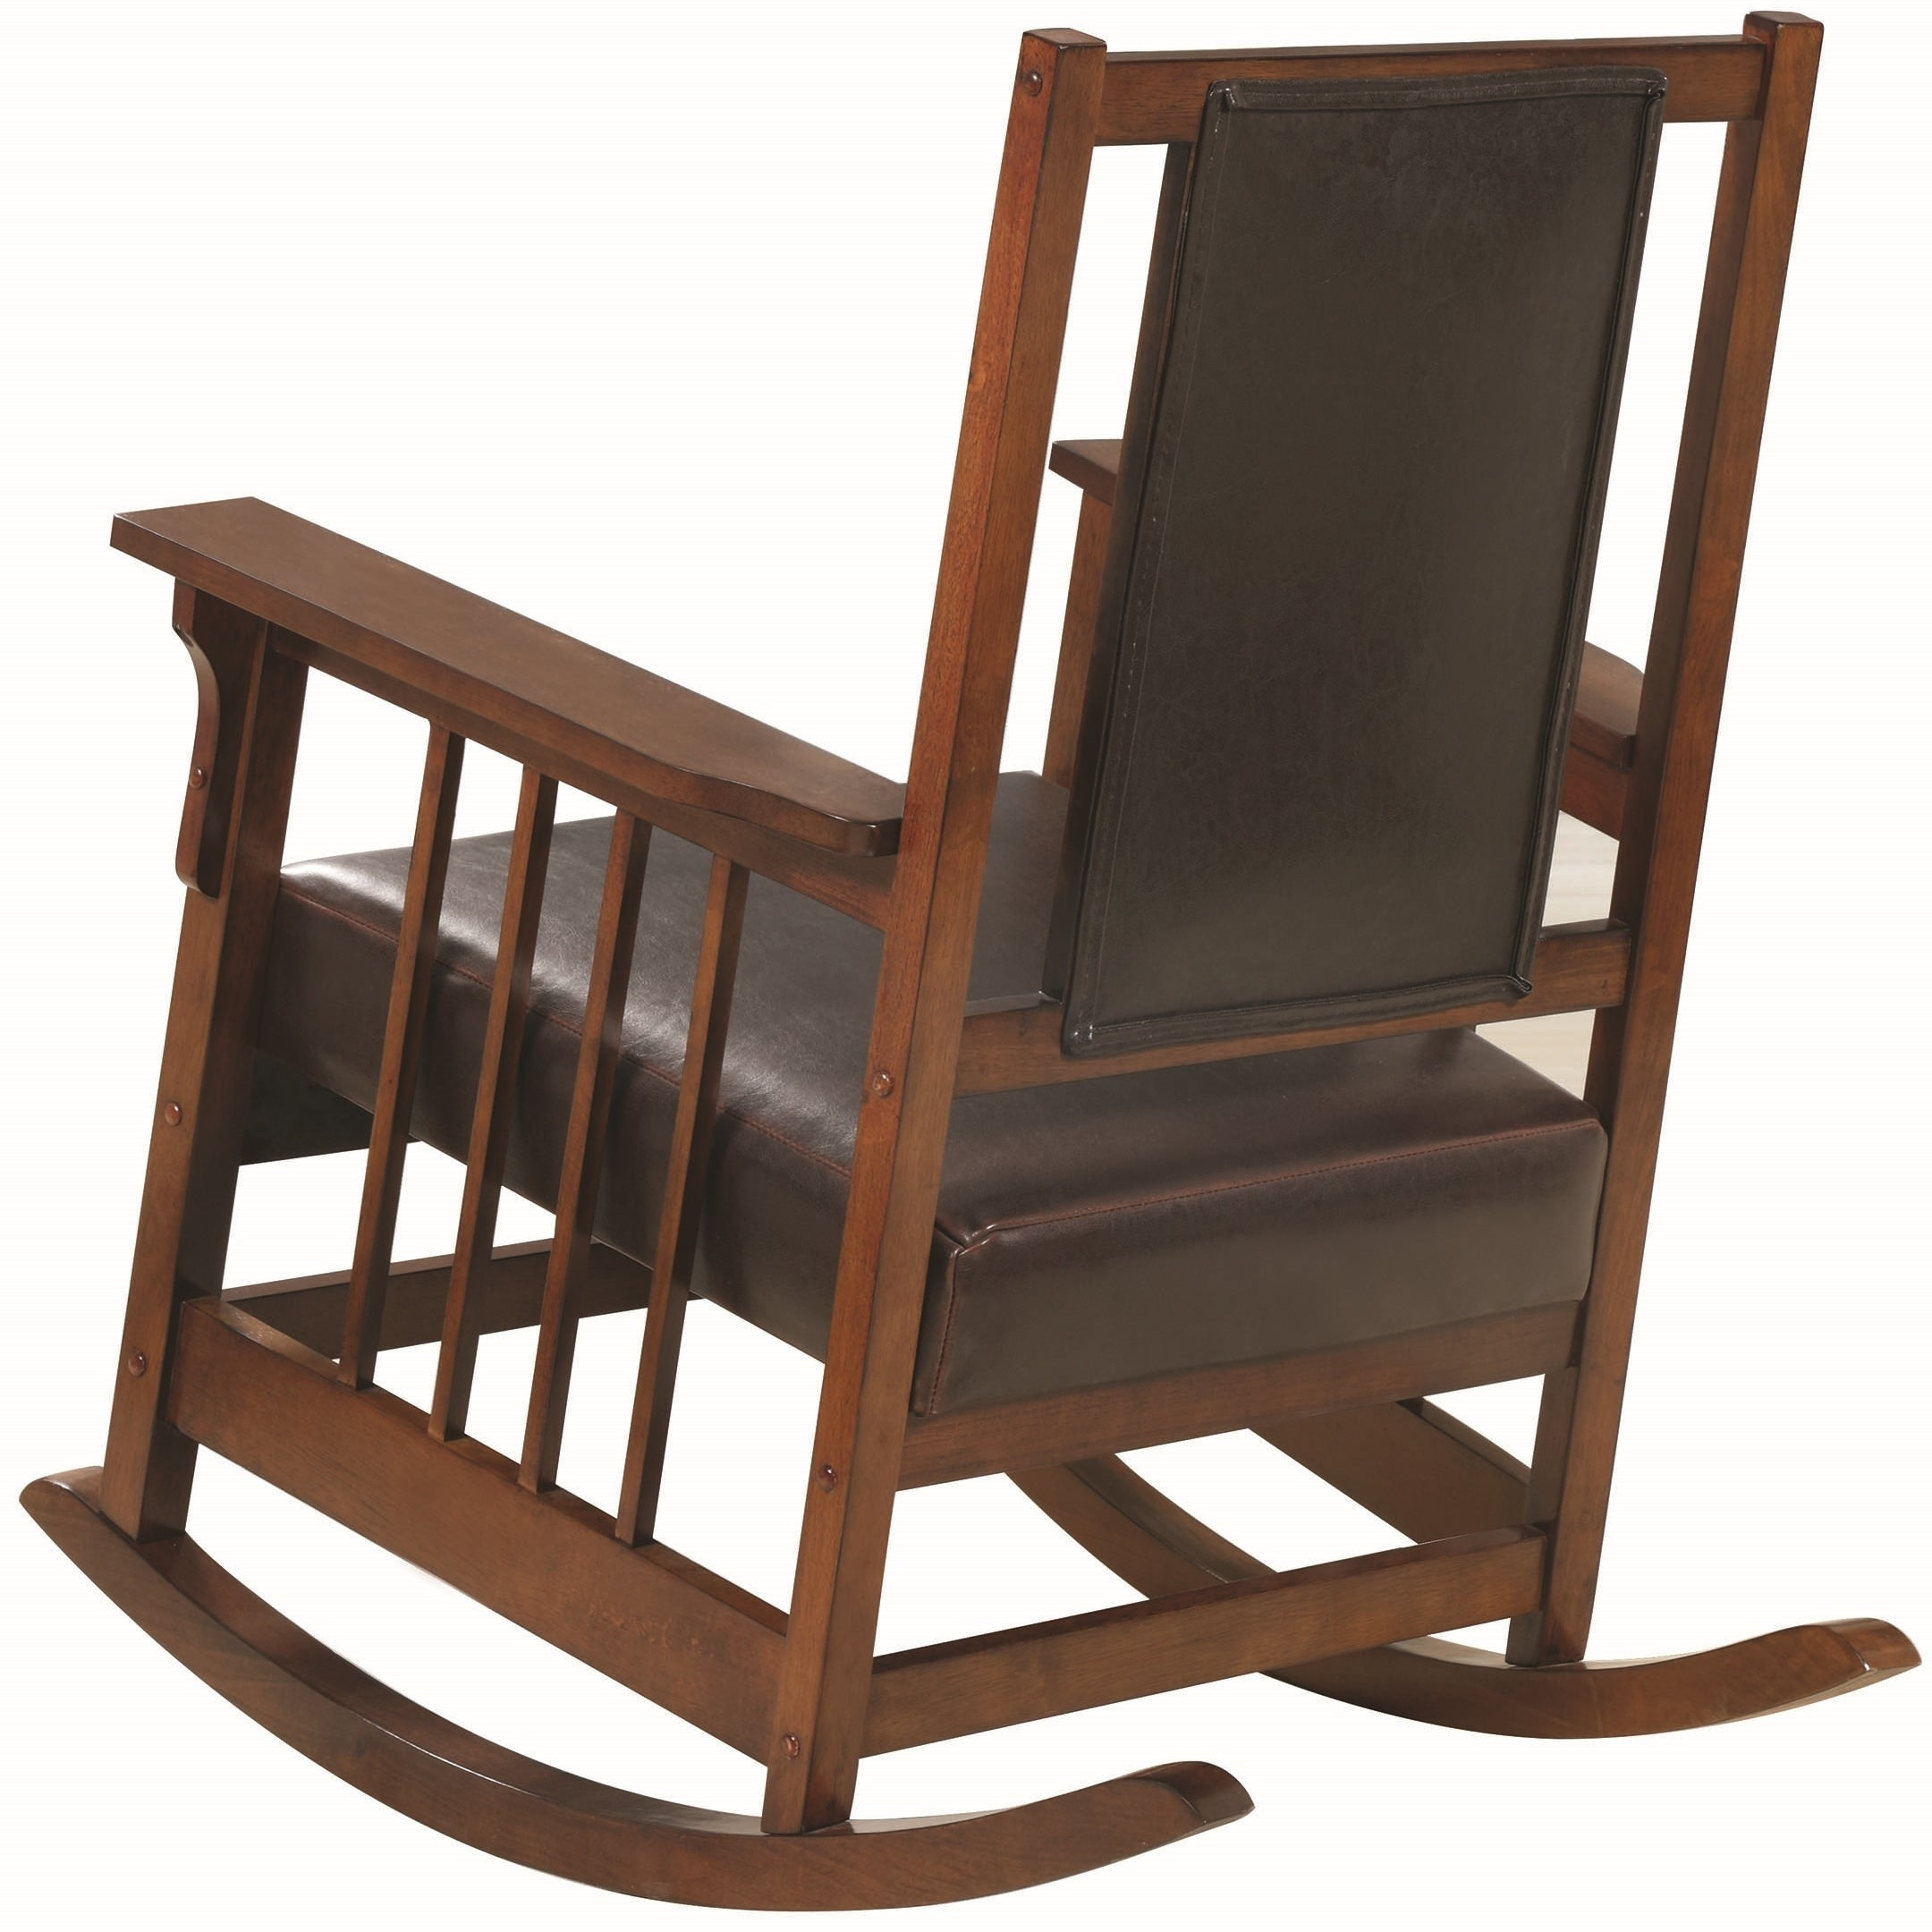 Mission Design Wood Rocking Chair With Brown Leather Seat Throughout Luxury Mission Style Rocking Chairs (#14 of 20)